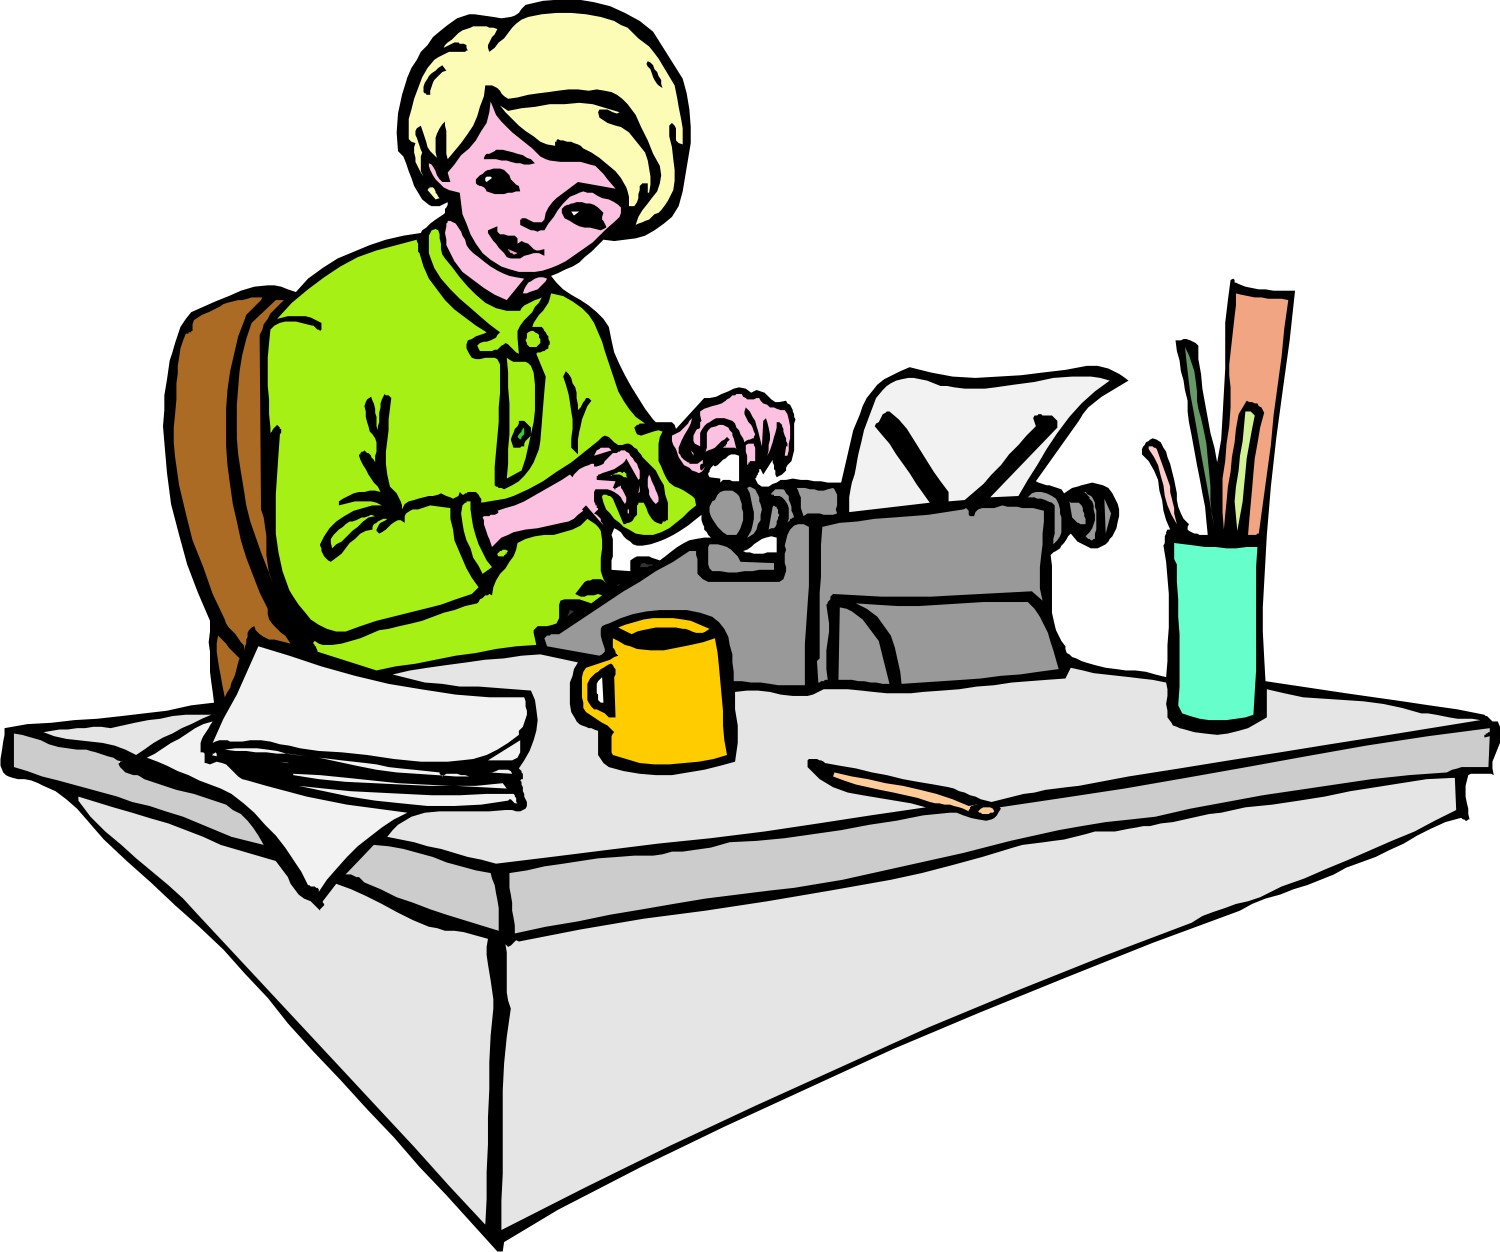 Secretary clipart admin support. Church bulletin bloopers because